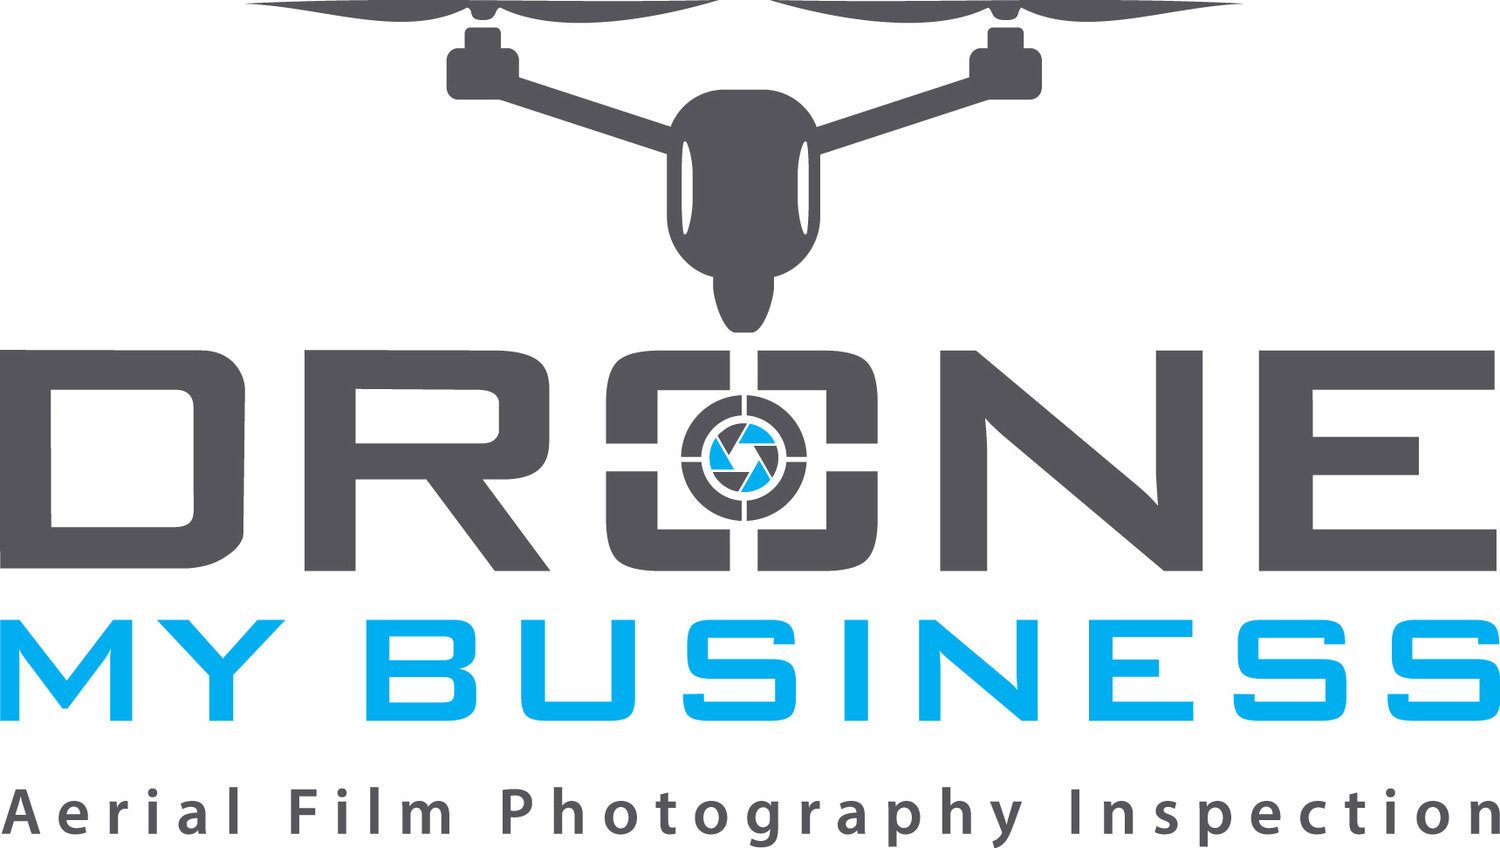 uav drone hire aerial photography filming survey hampshire surrey uk. Black Bedroom Furniture Sets. Home Design Ideas